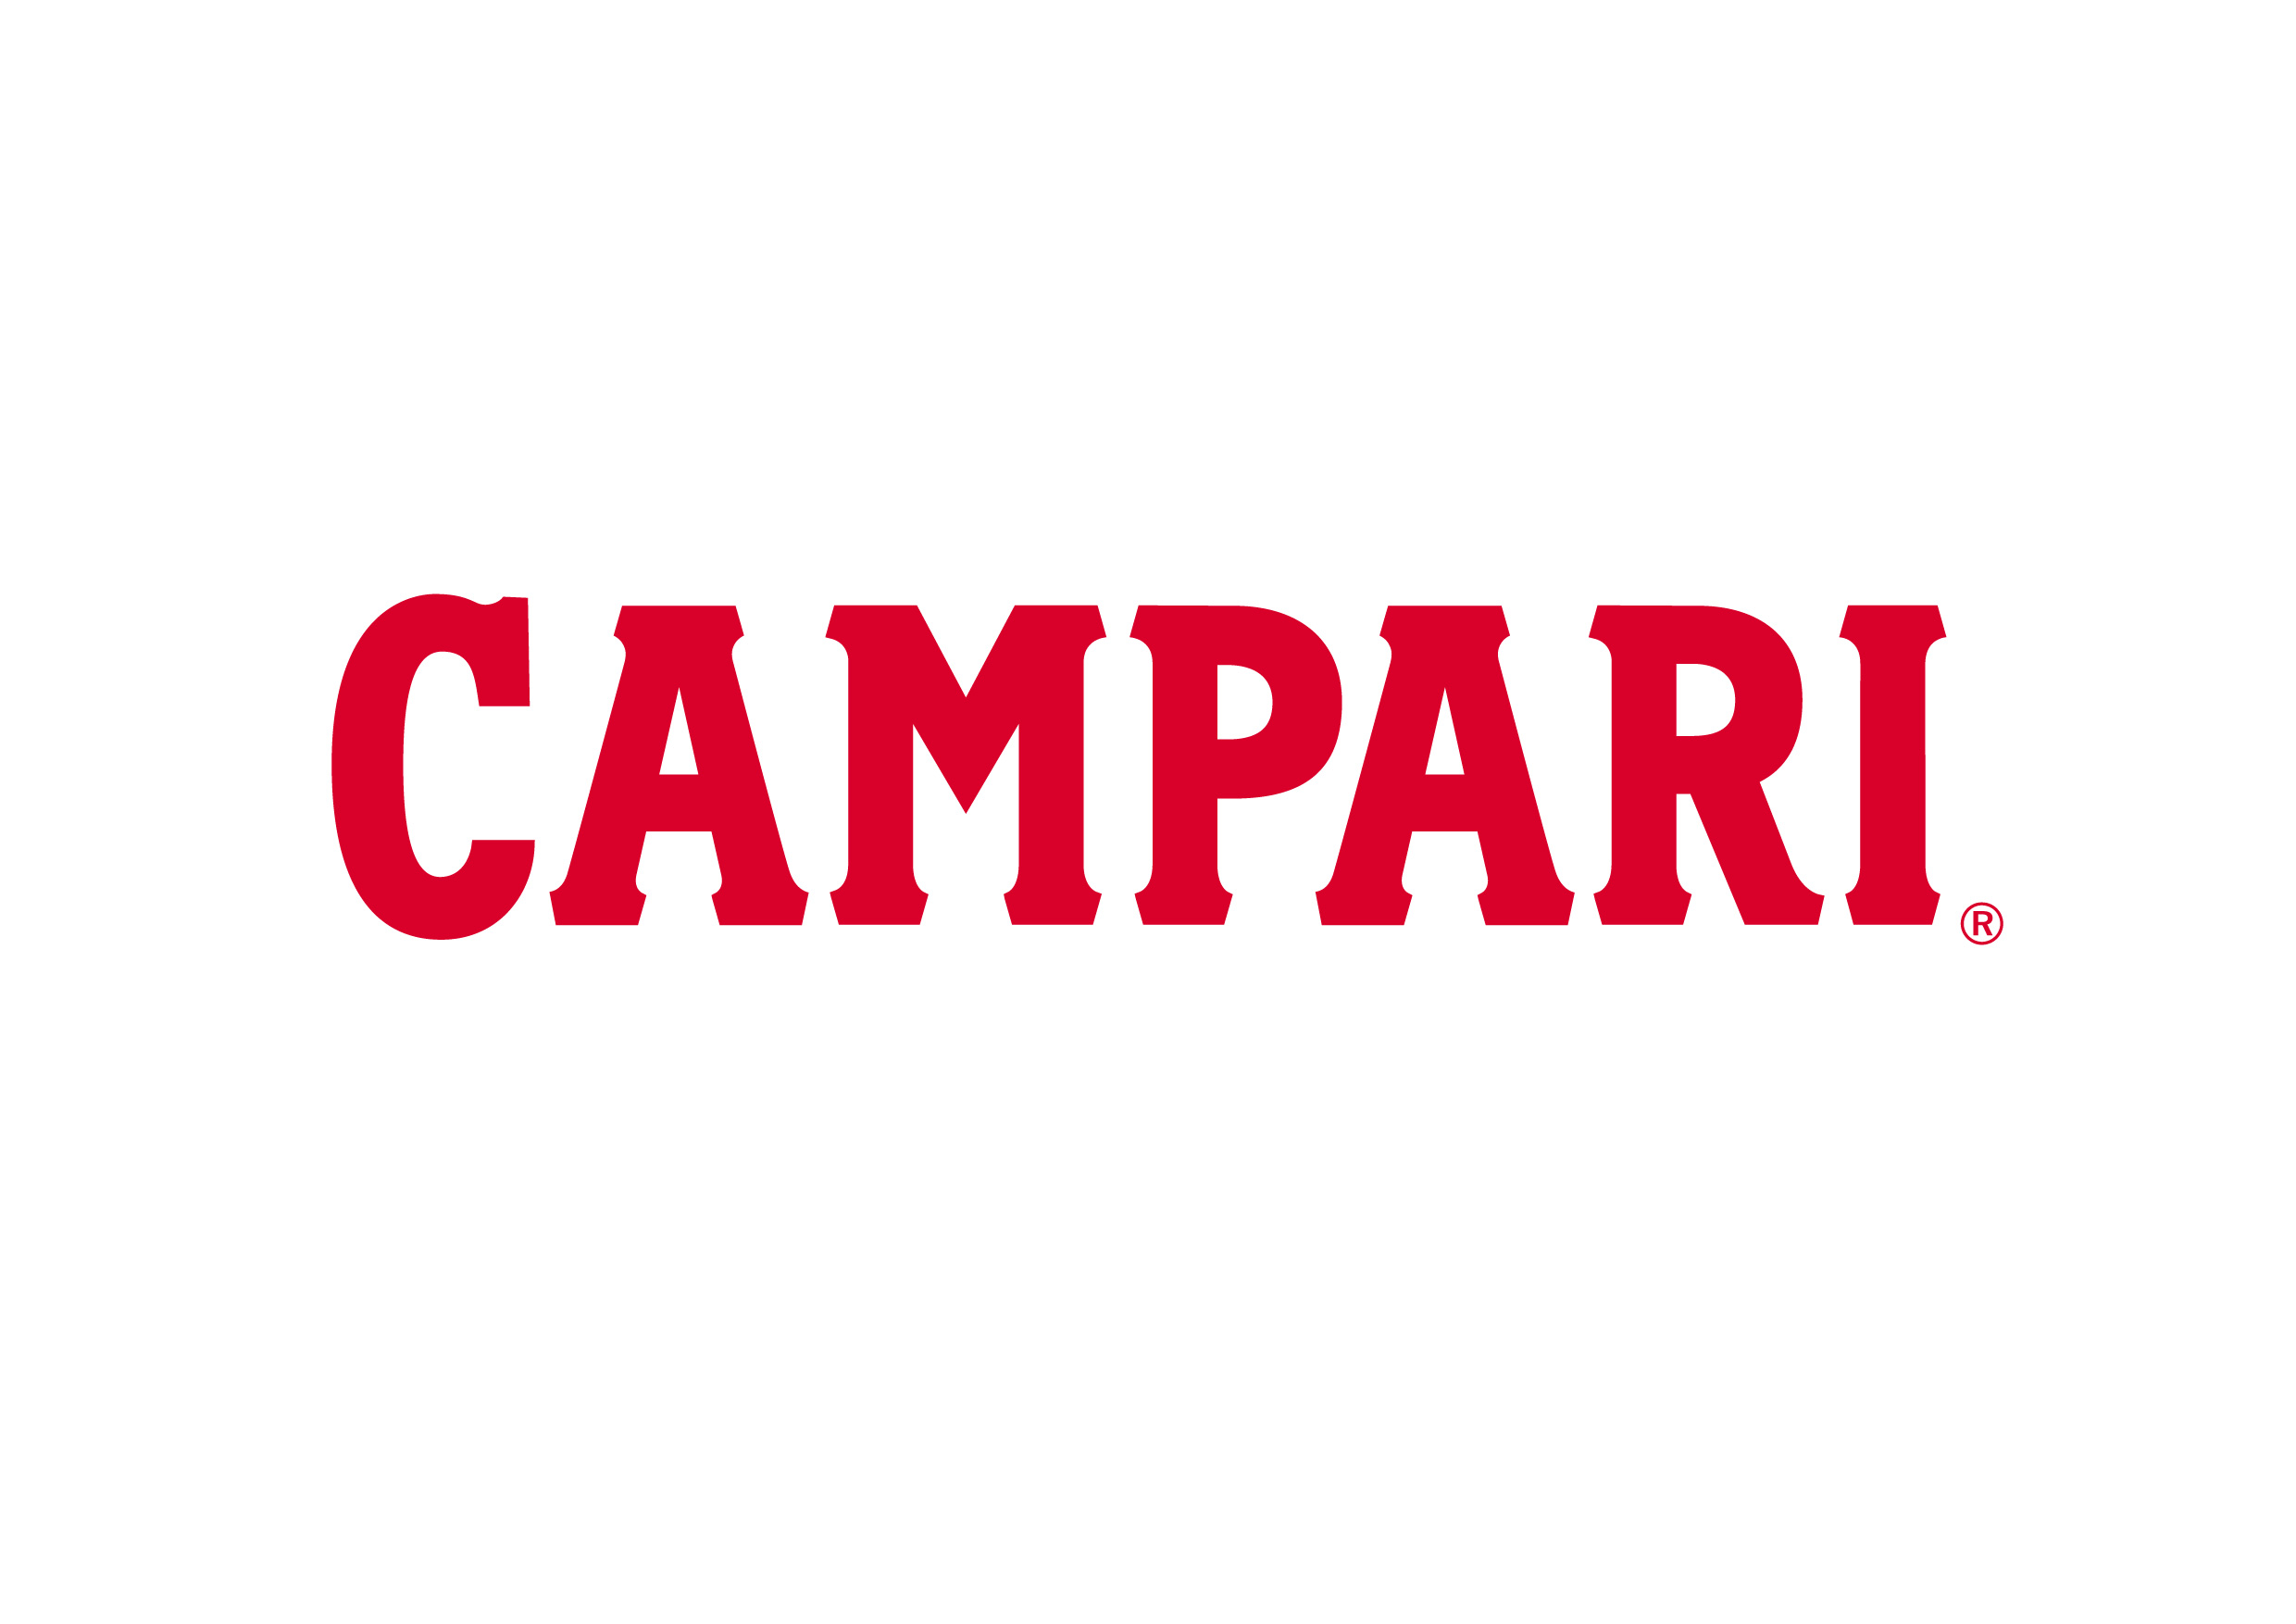 campari_red_logo.jpg